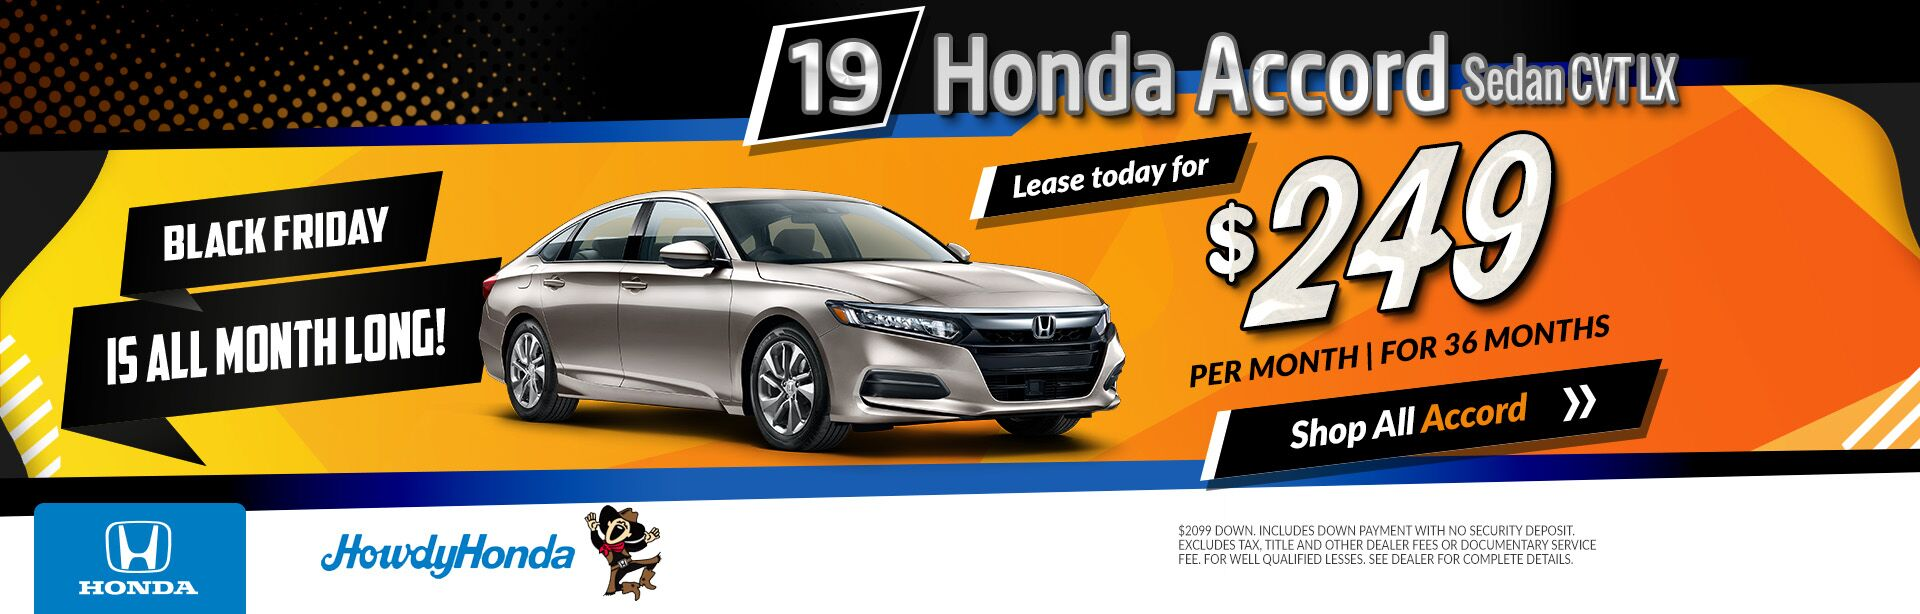 2019 Honda Accord Black Friday